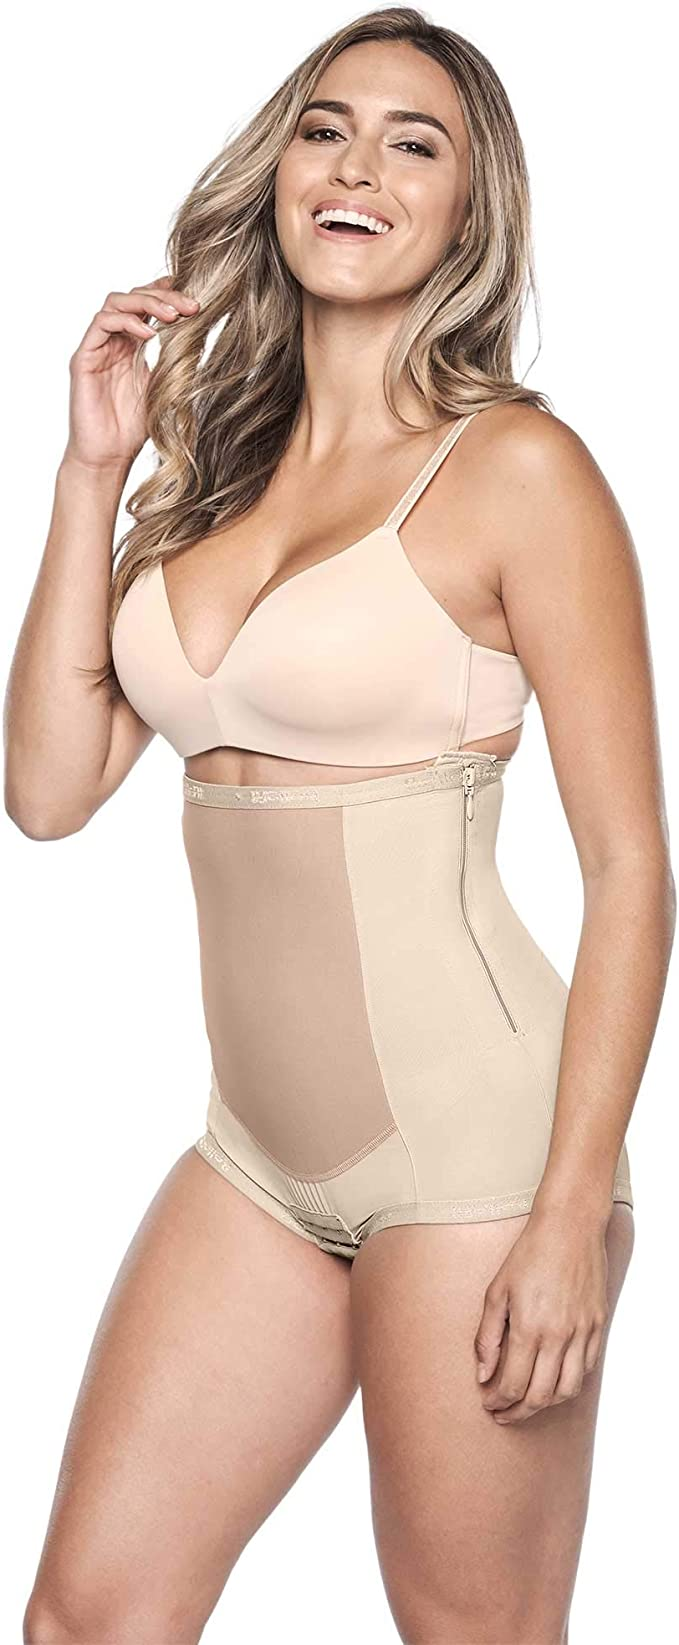 Women/'s Panty Girdle with Hook and Eye Closure by Susa 5202 White